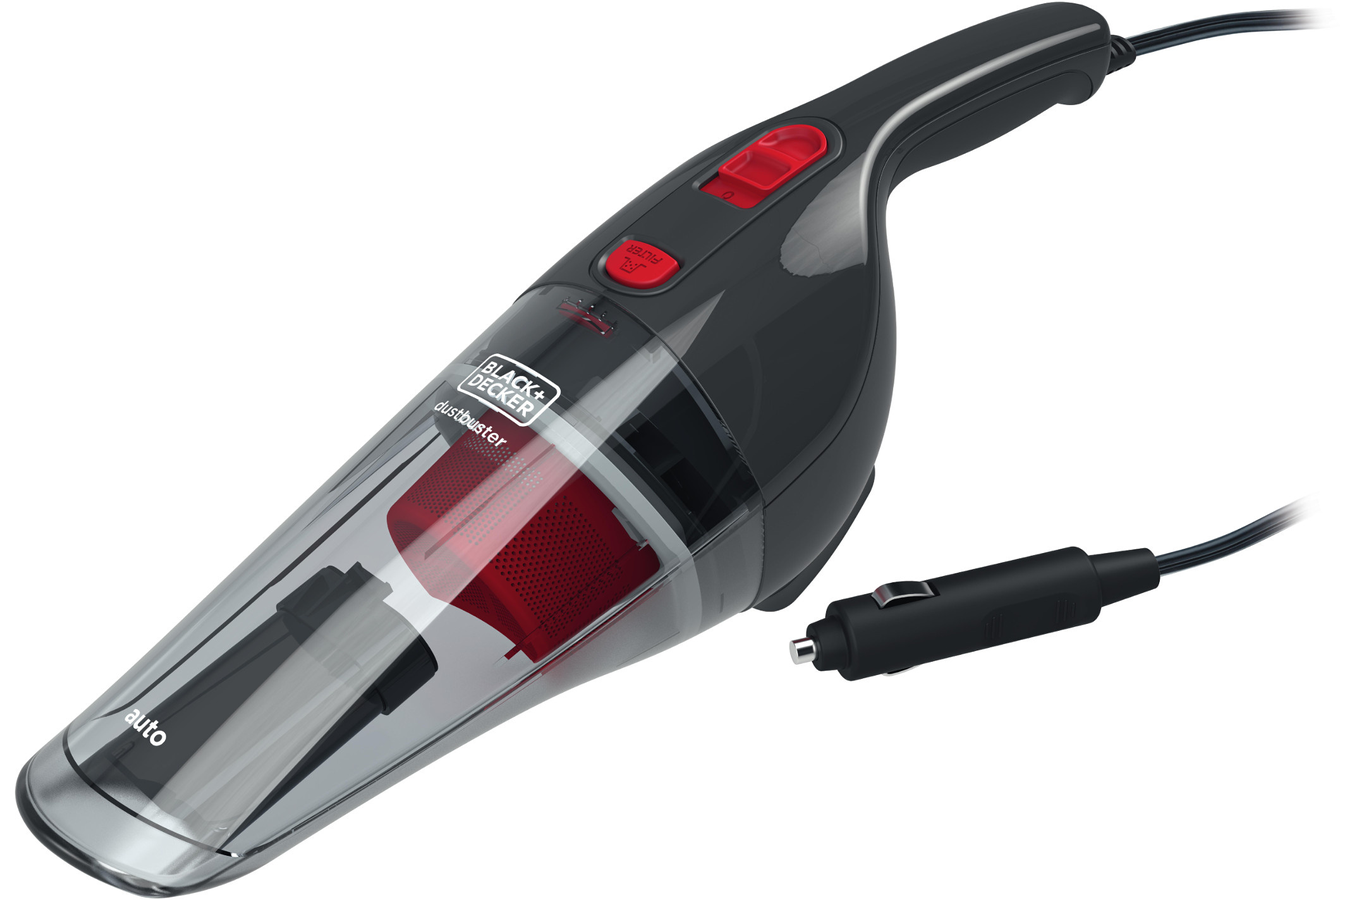 Aspirateur Main Black Decker Dustbuster Auto Nv 1200av 4199863 Darty